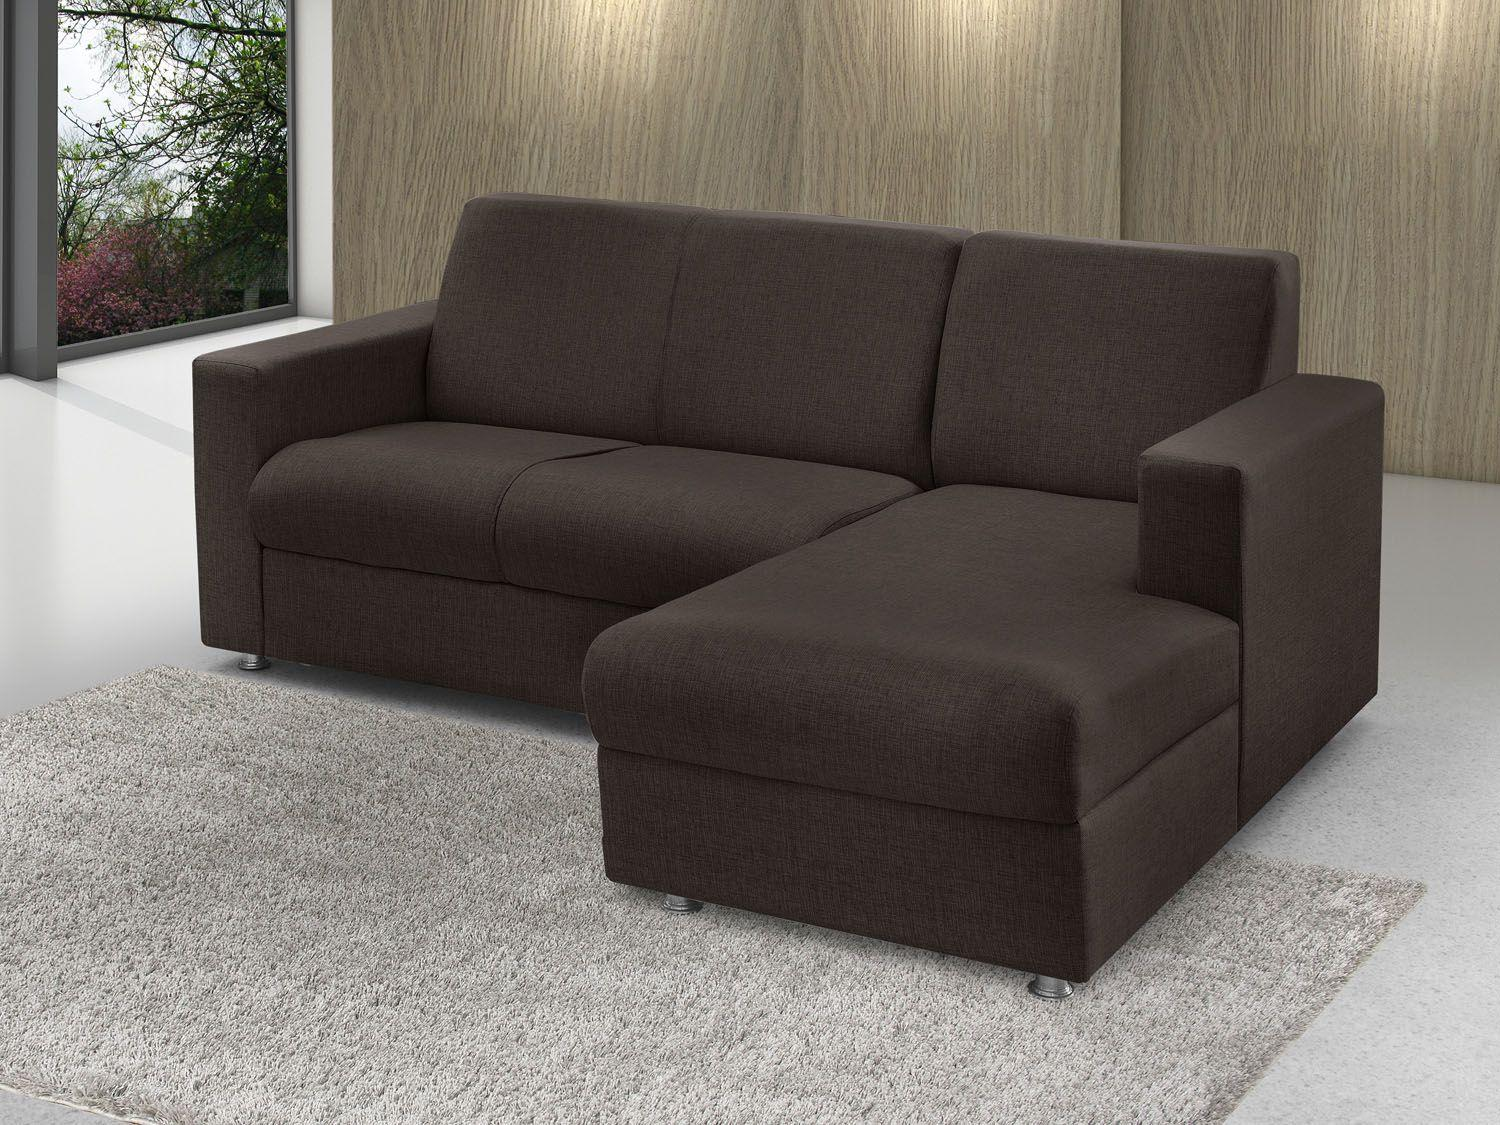 Sofa chaise 2 lugares retratil for Sofa 6 lugares reclinavel e assento retratil roma suede amassado marrom orb